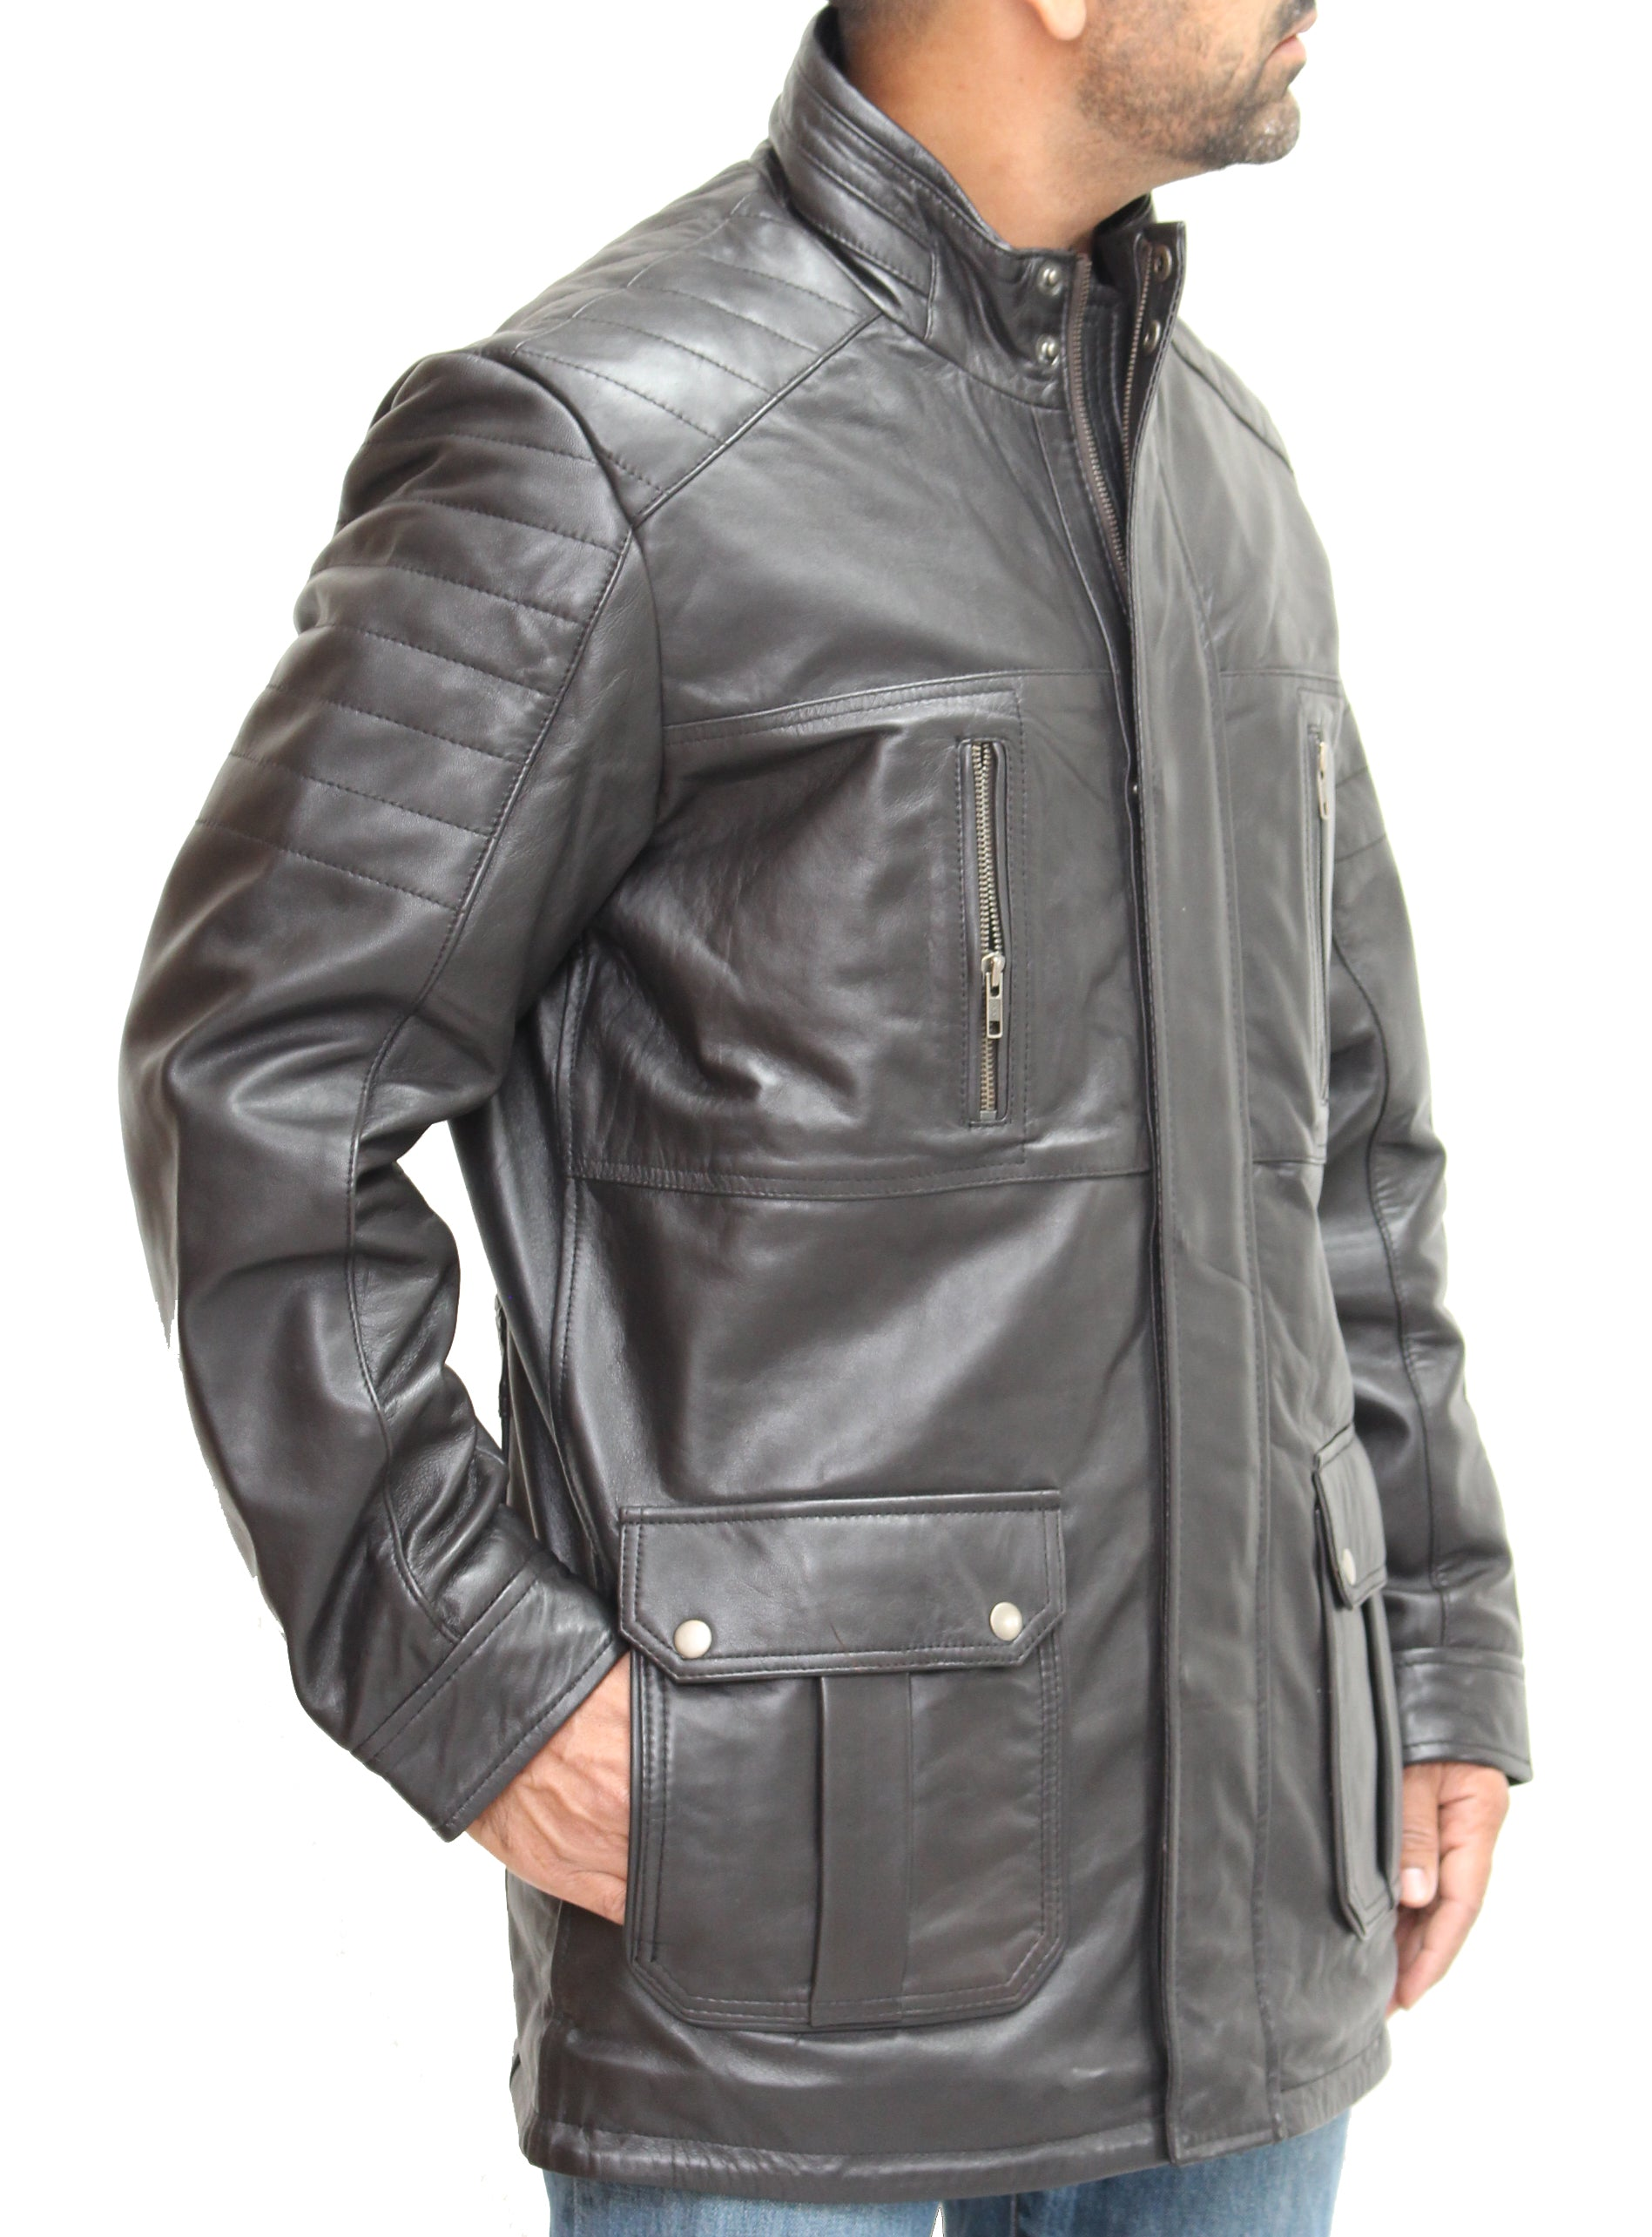 Mens real leather safari/hunter style leather coat with ribbed stitching detail. Available in Black and Brown